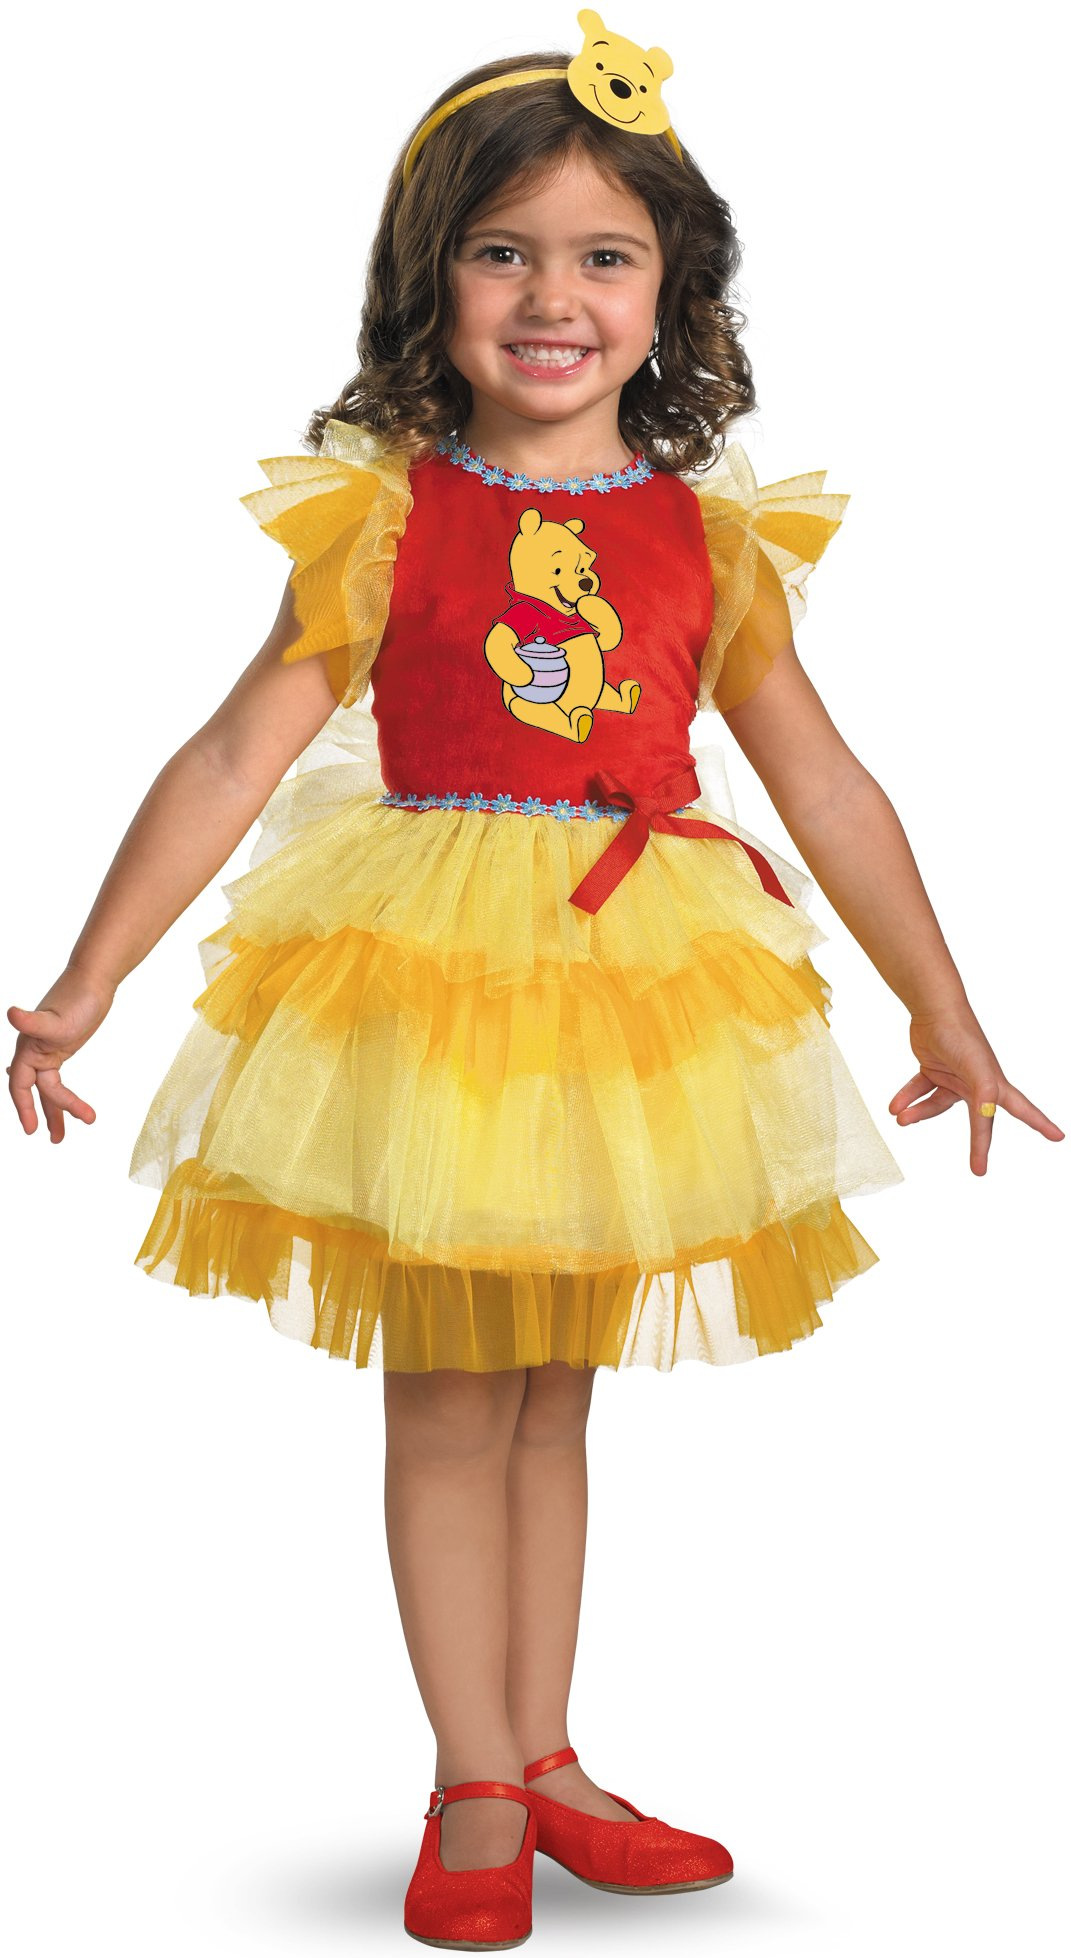 Winnie the Pooh - Frilly Winnie the Pooh Infant Costume